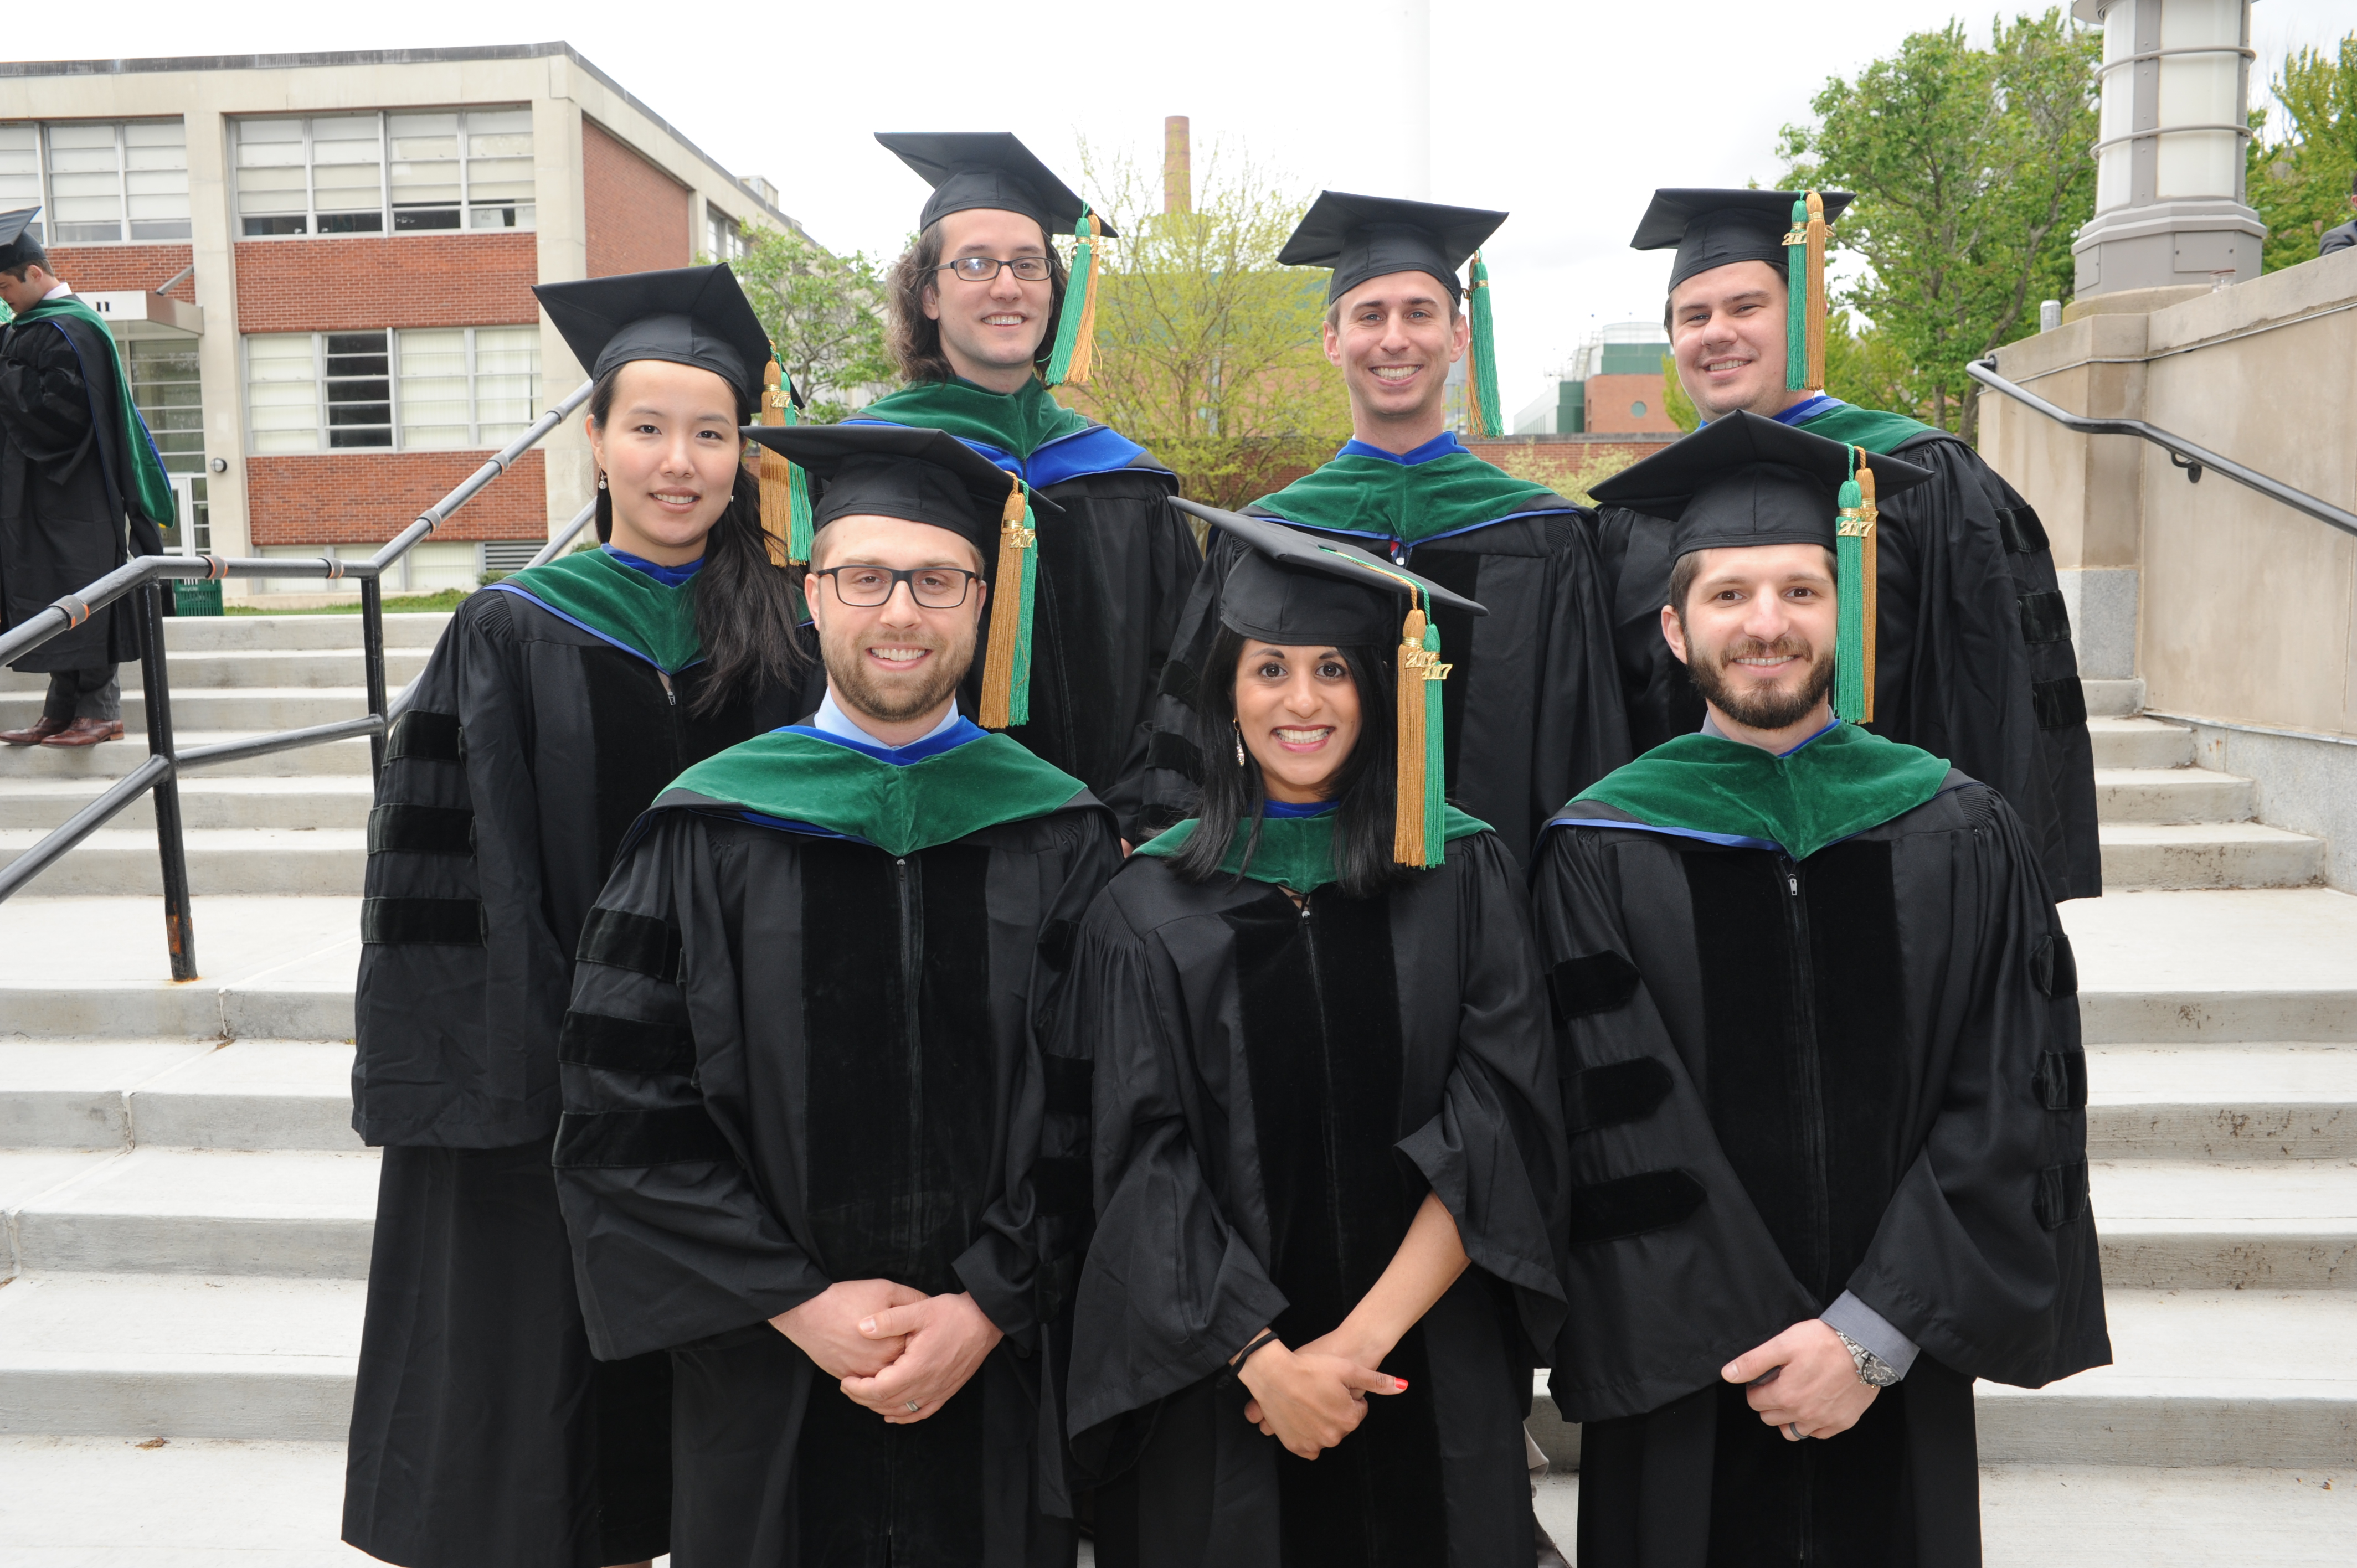 MD PhD Students in caps and gowns